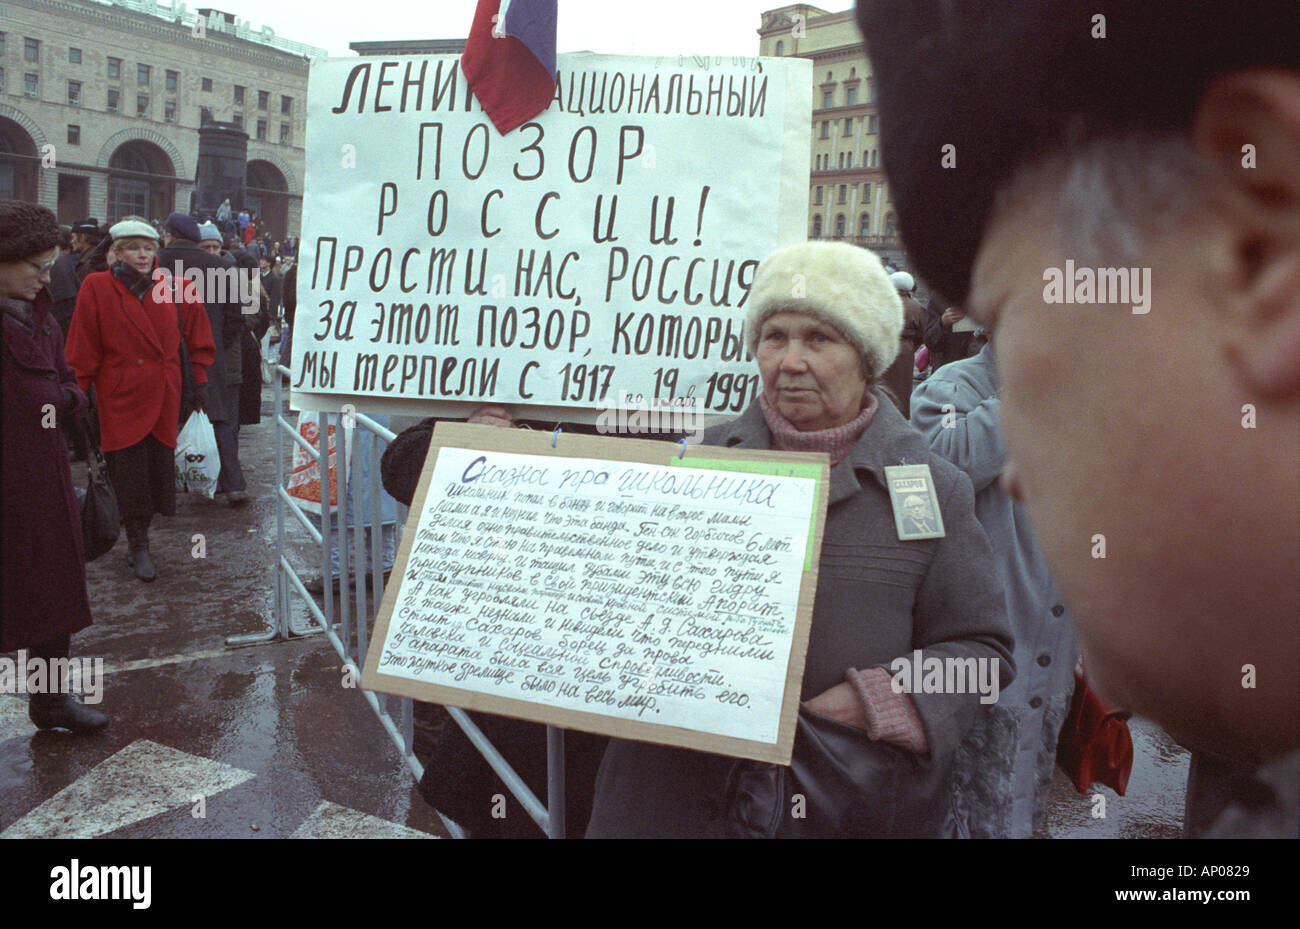 A crowd in Moscow where the KGB was headquartered expresses varied opinions on November 7 1991, just before the USSR's collapse - Stock Image